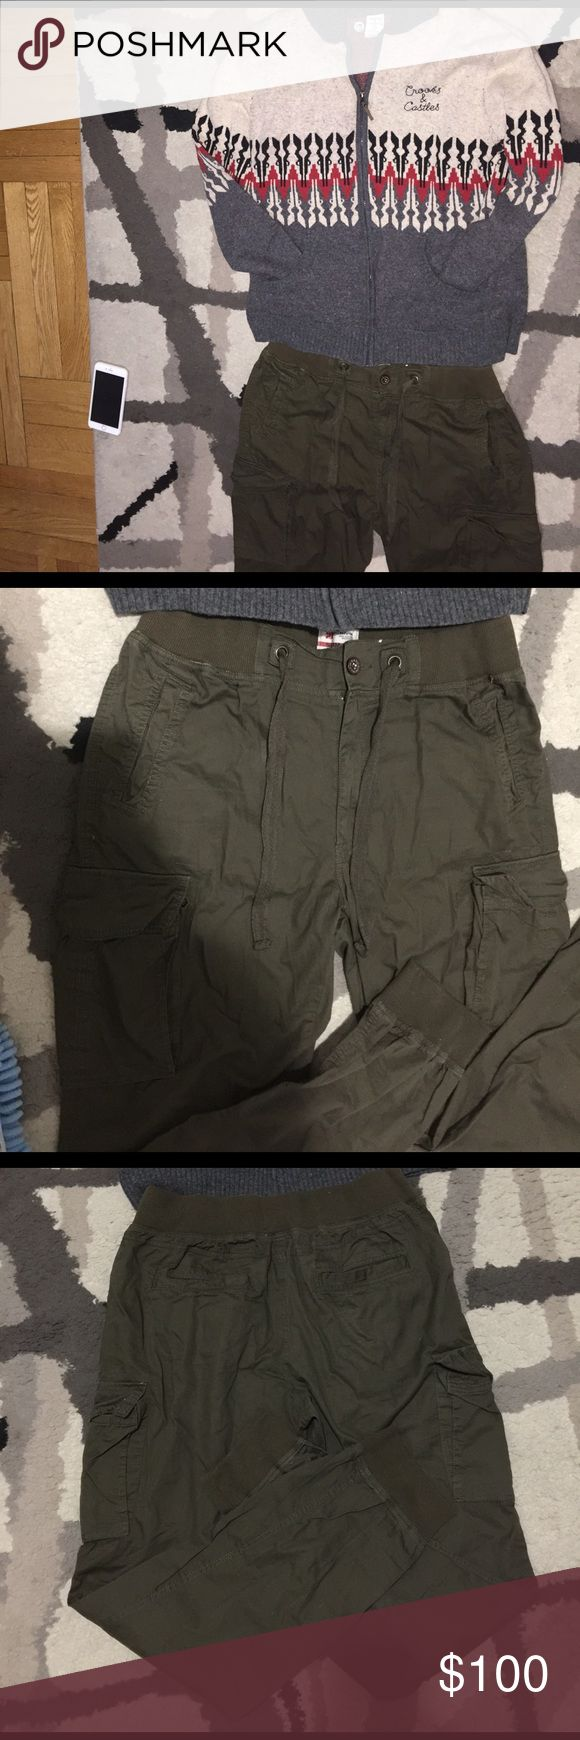 Mens outfit slim fit cargo pants joggers +sweater Both items are like new no signs of wear . The sweater never worn and the joggers worn maybe 3x. No flaws ..  Cargo pants is a slim fit size 40/34 and sweater XL . U can purchase sweater separate on another listing or pants on this page Lmk.. Listing is for both items u see Pants Cargo